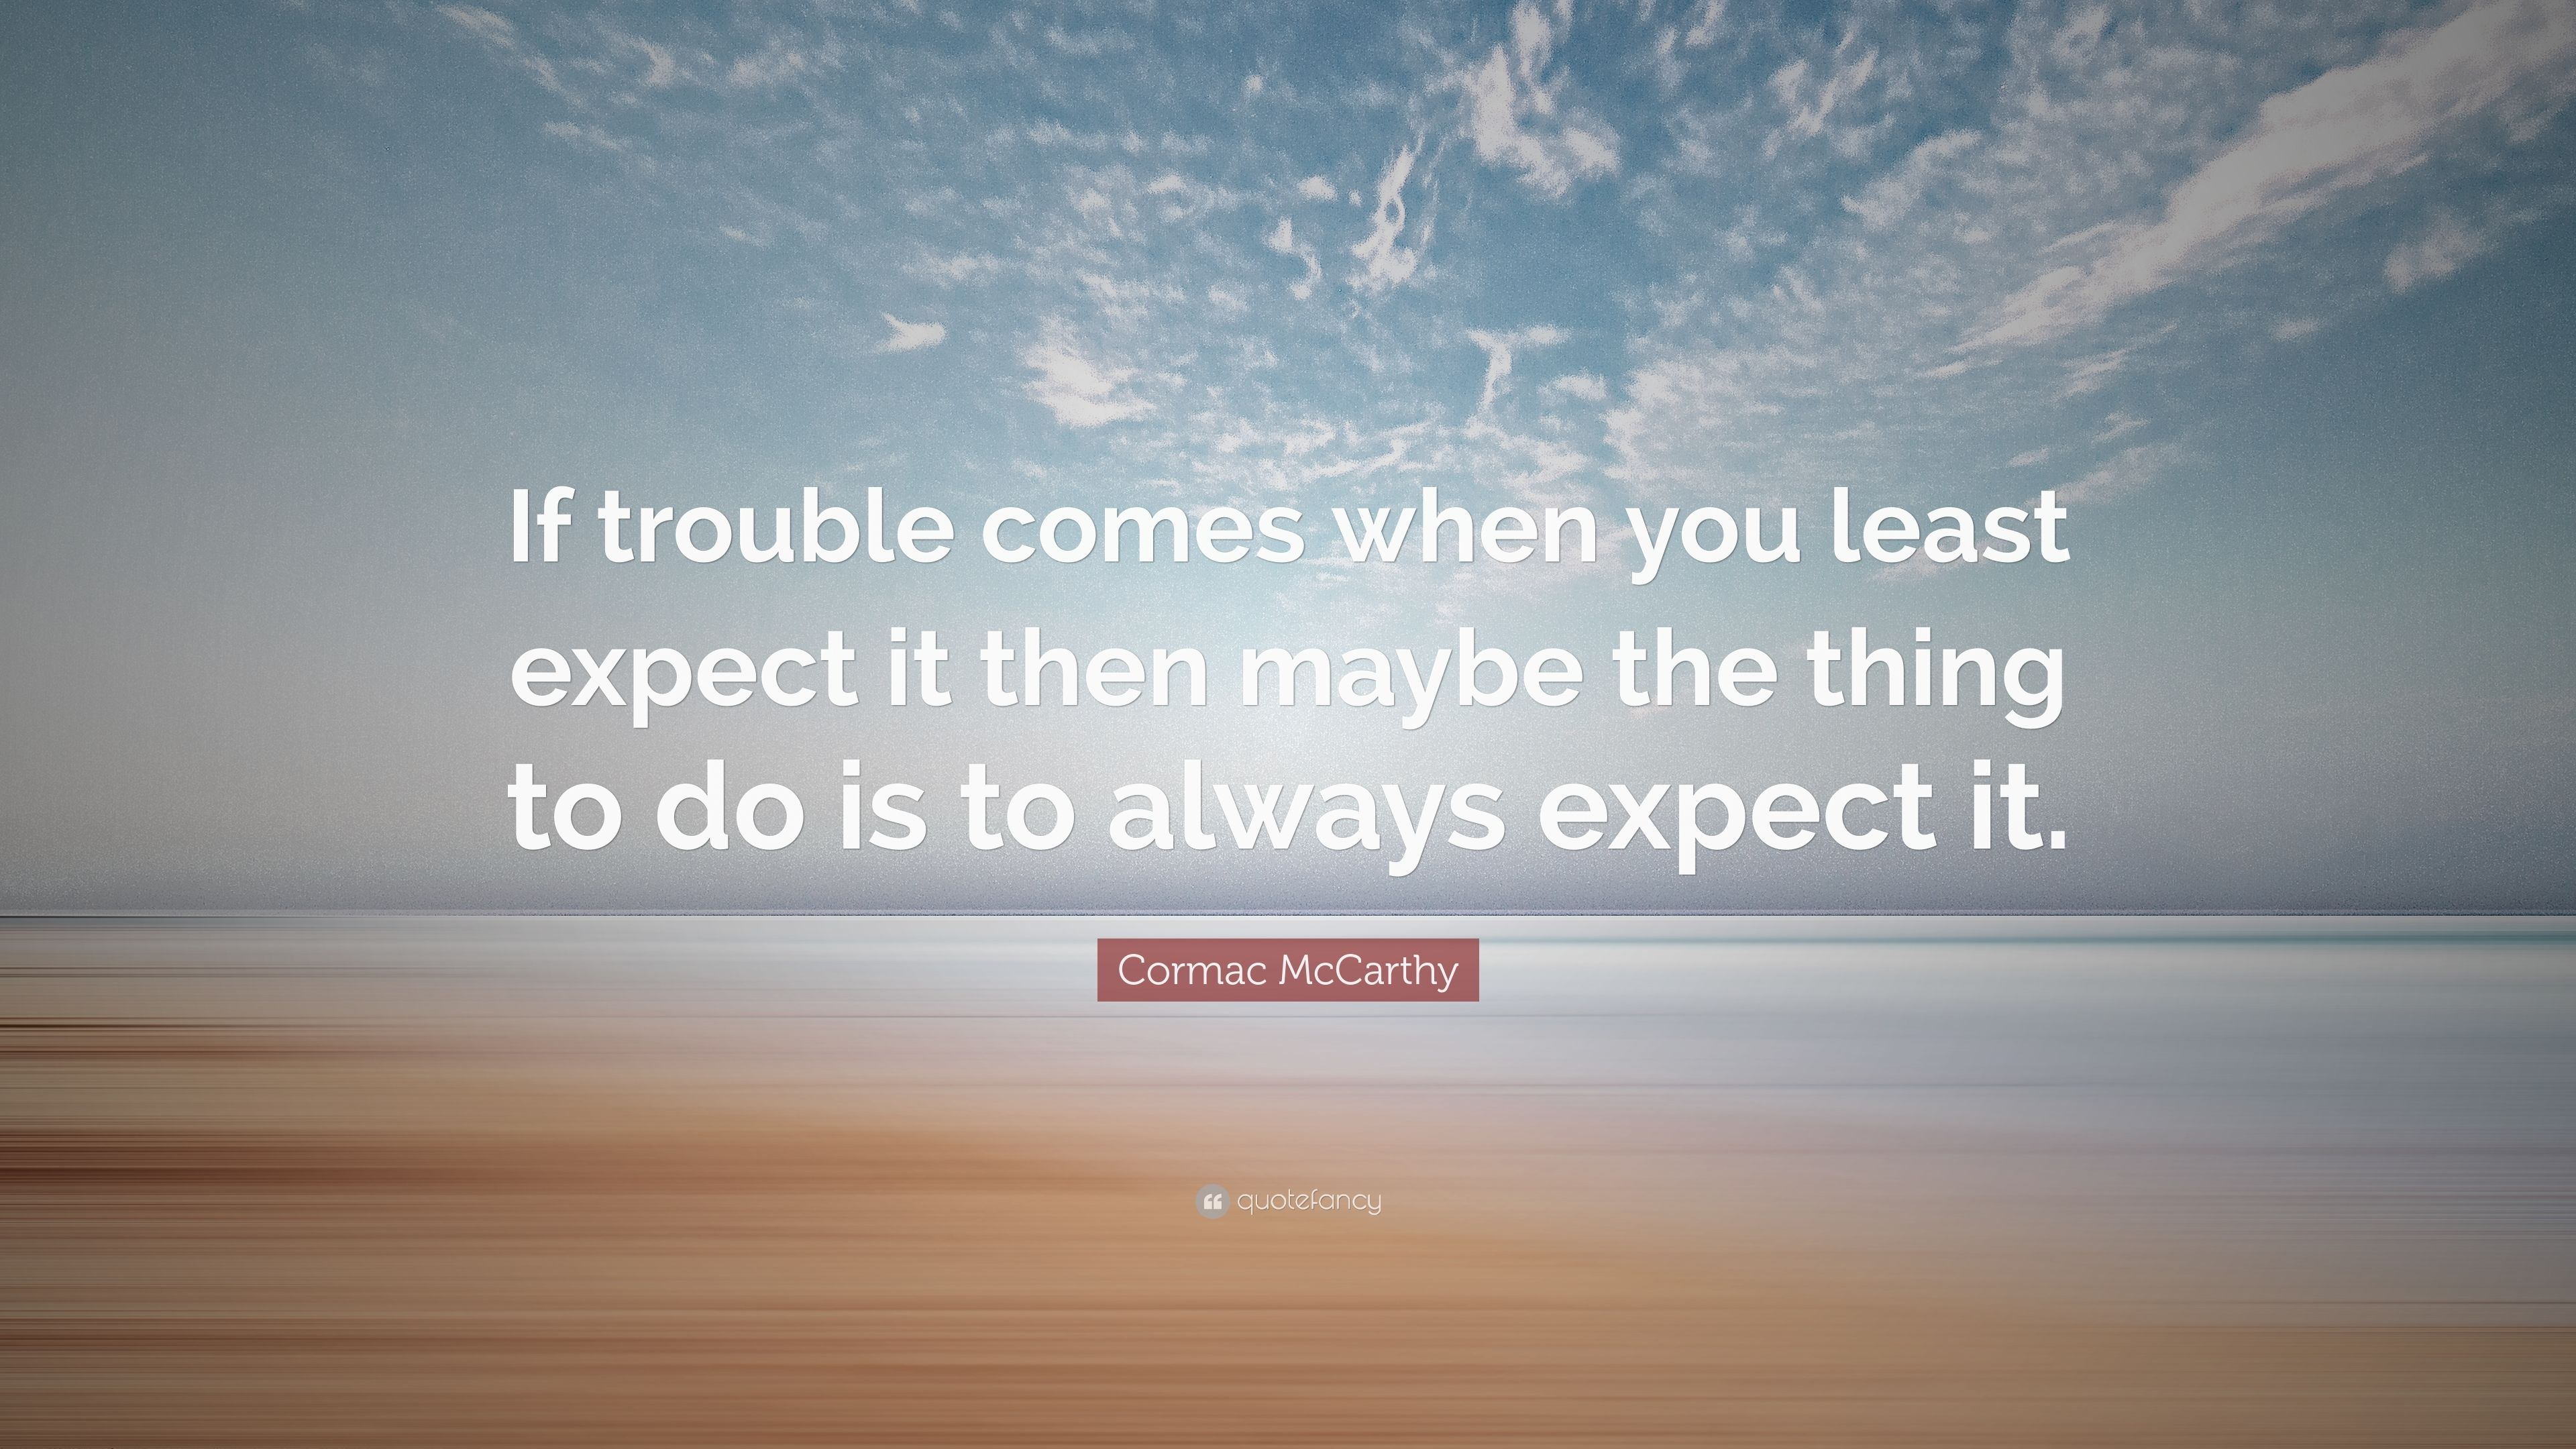 Cormac Mccarthy Quote If Trouble Comes When You Least Expect It